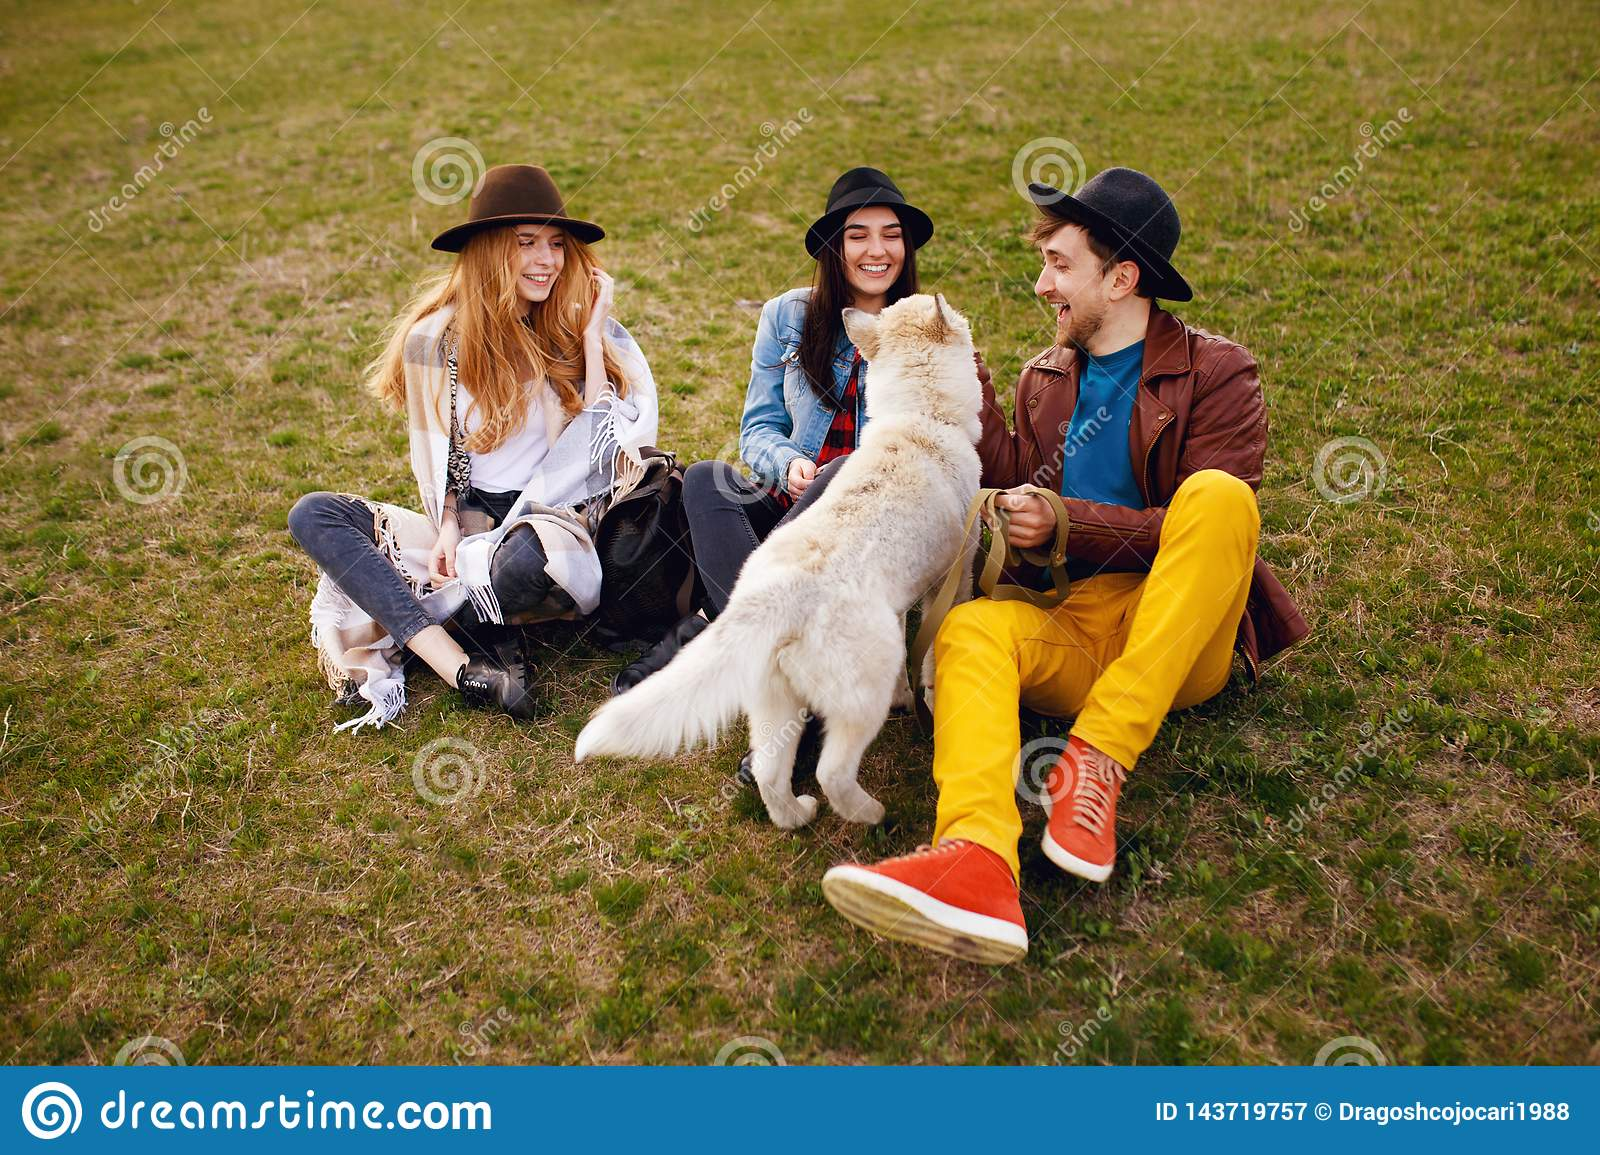 A three happy young stylish friends spend time outdoors together with their husky dog sitting on green grass.